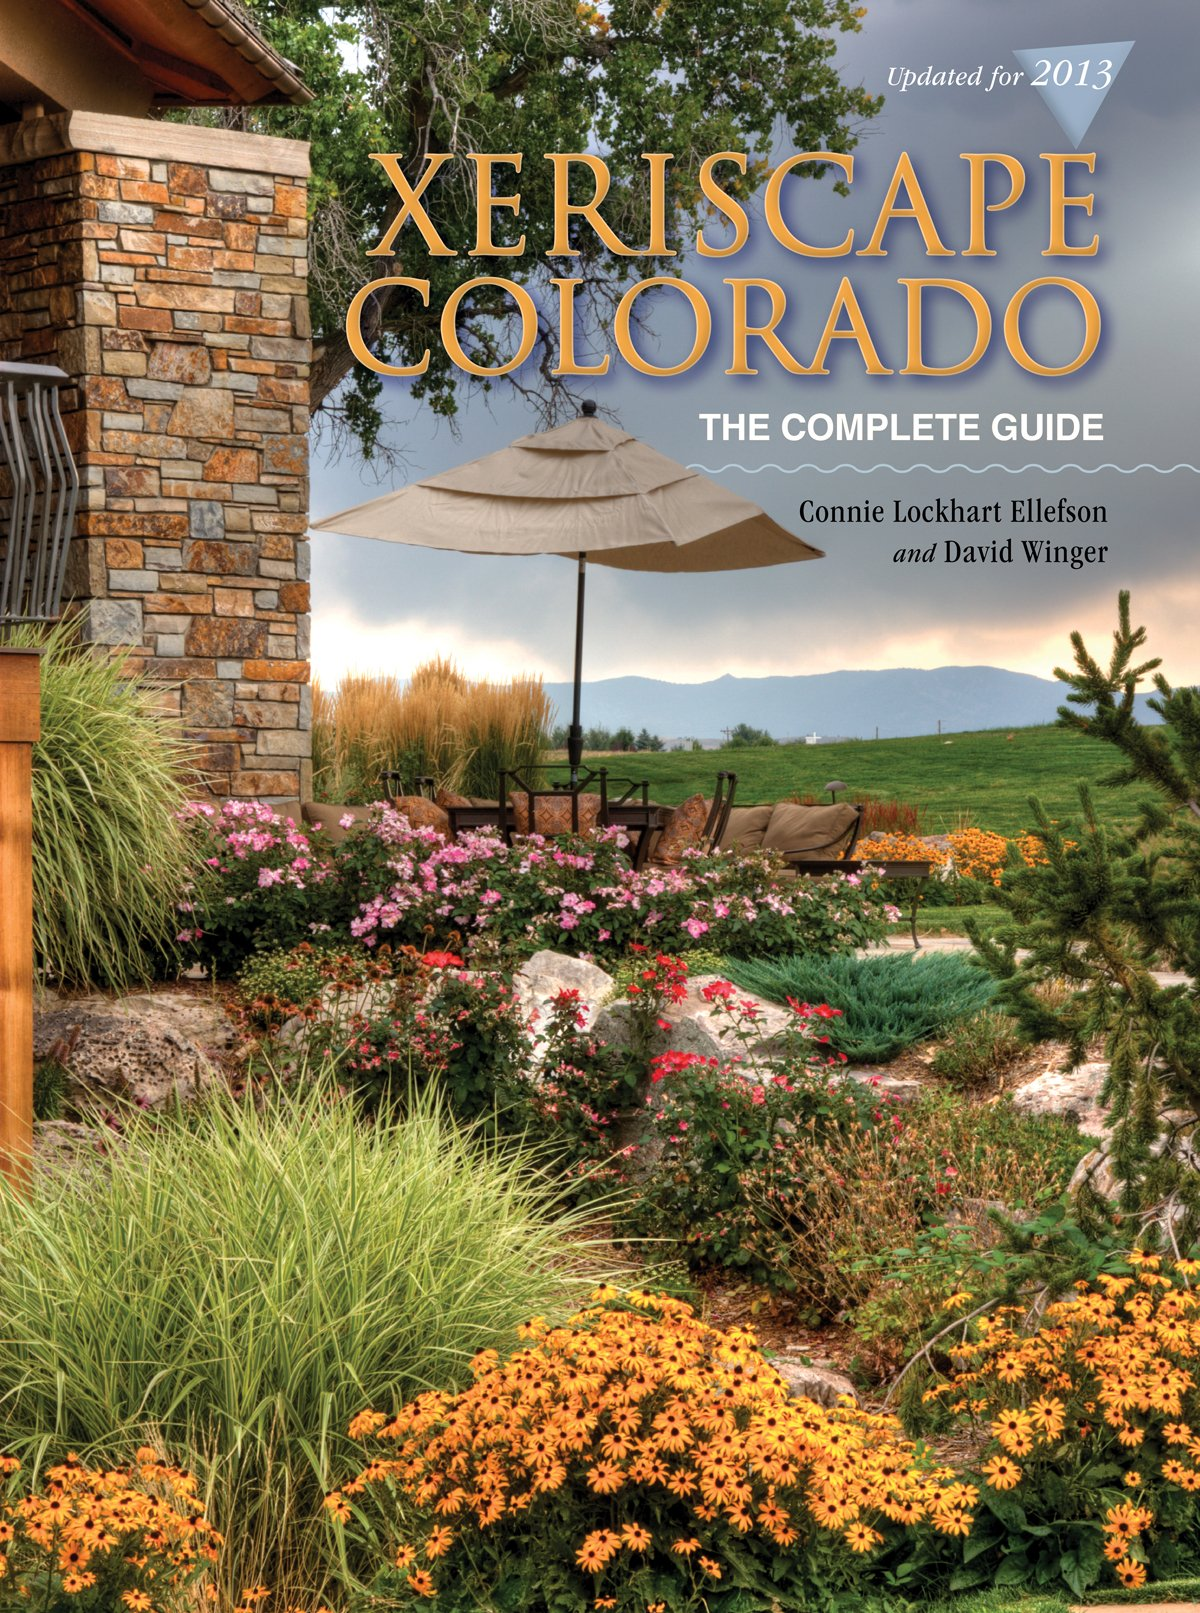 Xeriscape Colorado The Complete Guide Connie Lockhart Ellefson